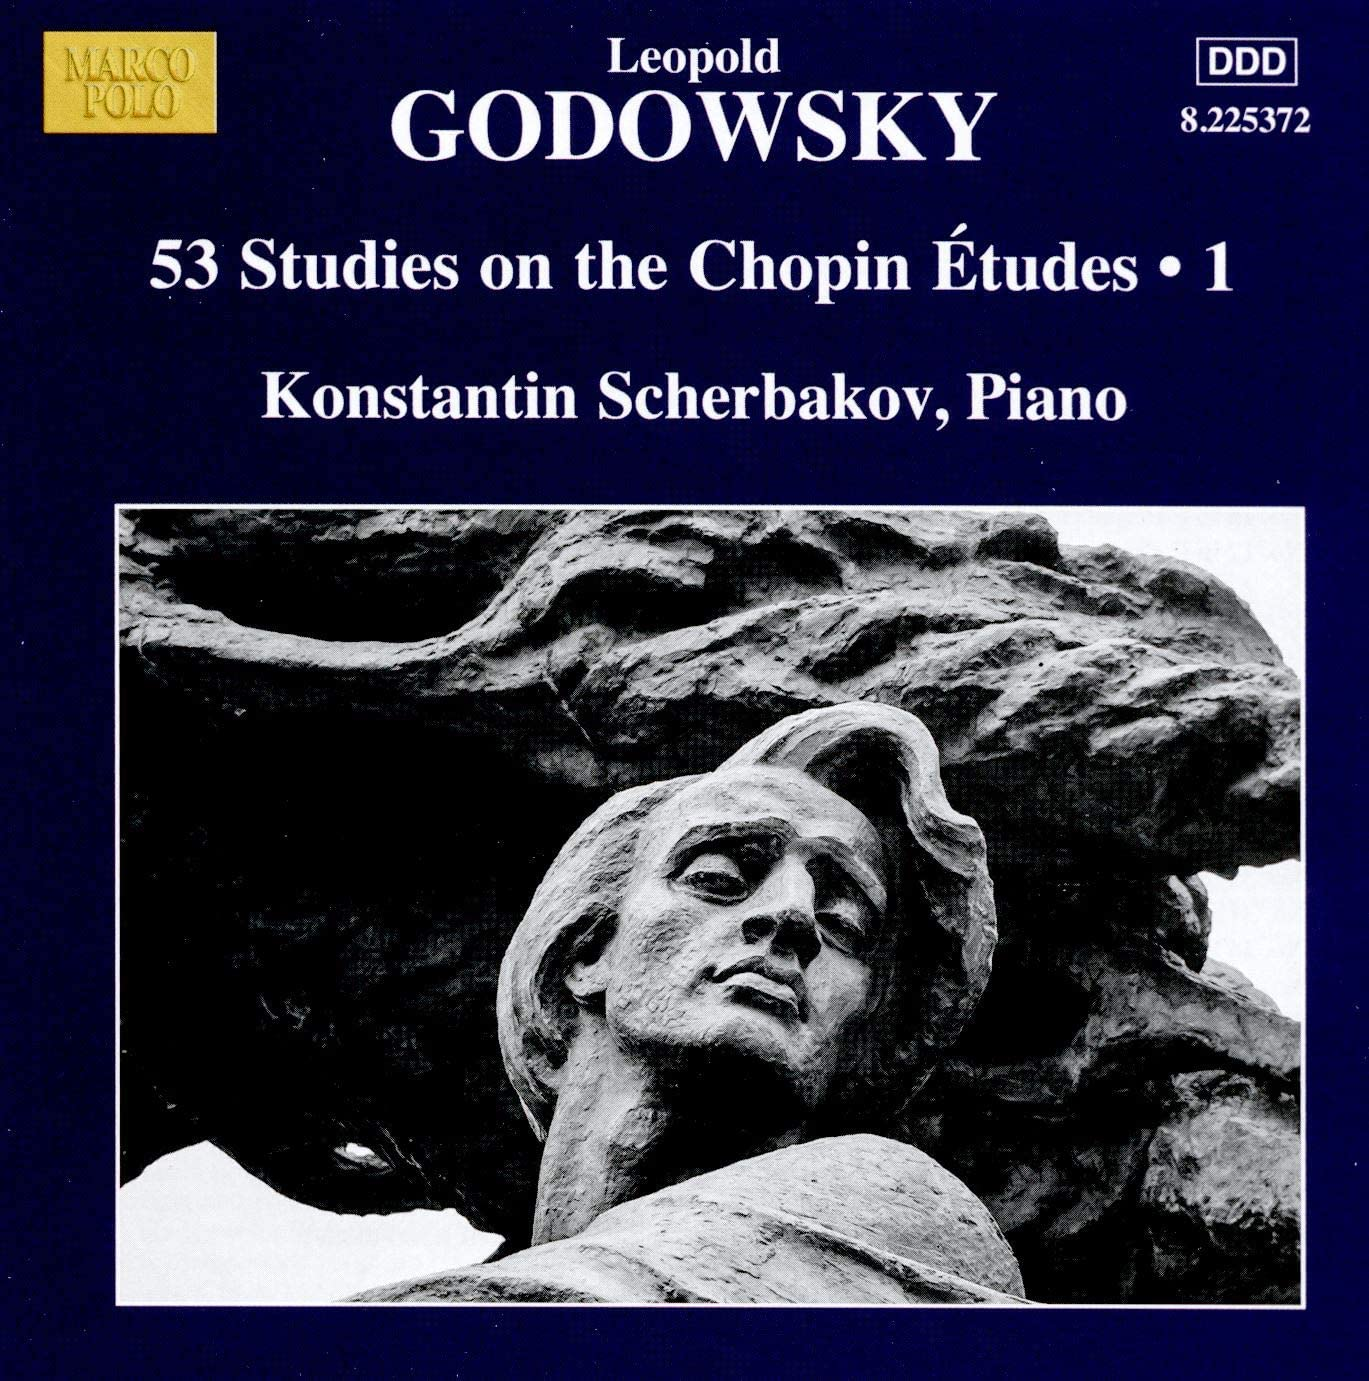 Review of GODOWSKY 53 Studies on the Chopin Études, Vol 1 (Konstantin Scherbakov)